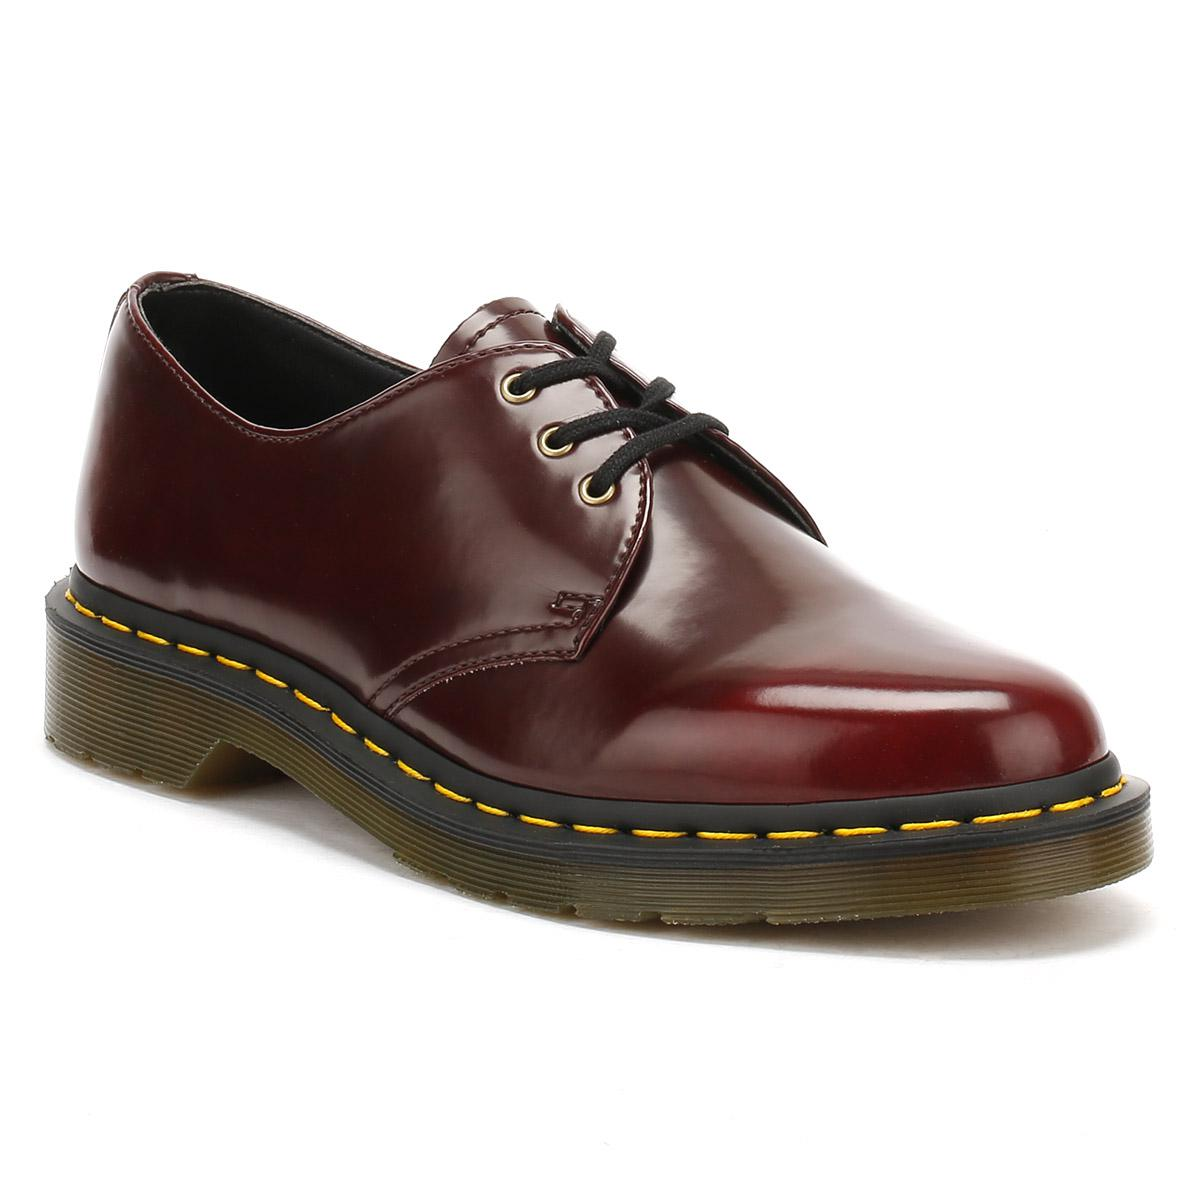 Womens 1461 Temperley Moccasins, Red Dr. Martens